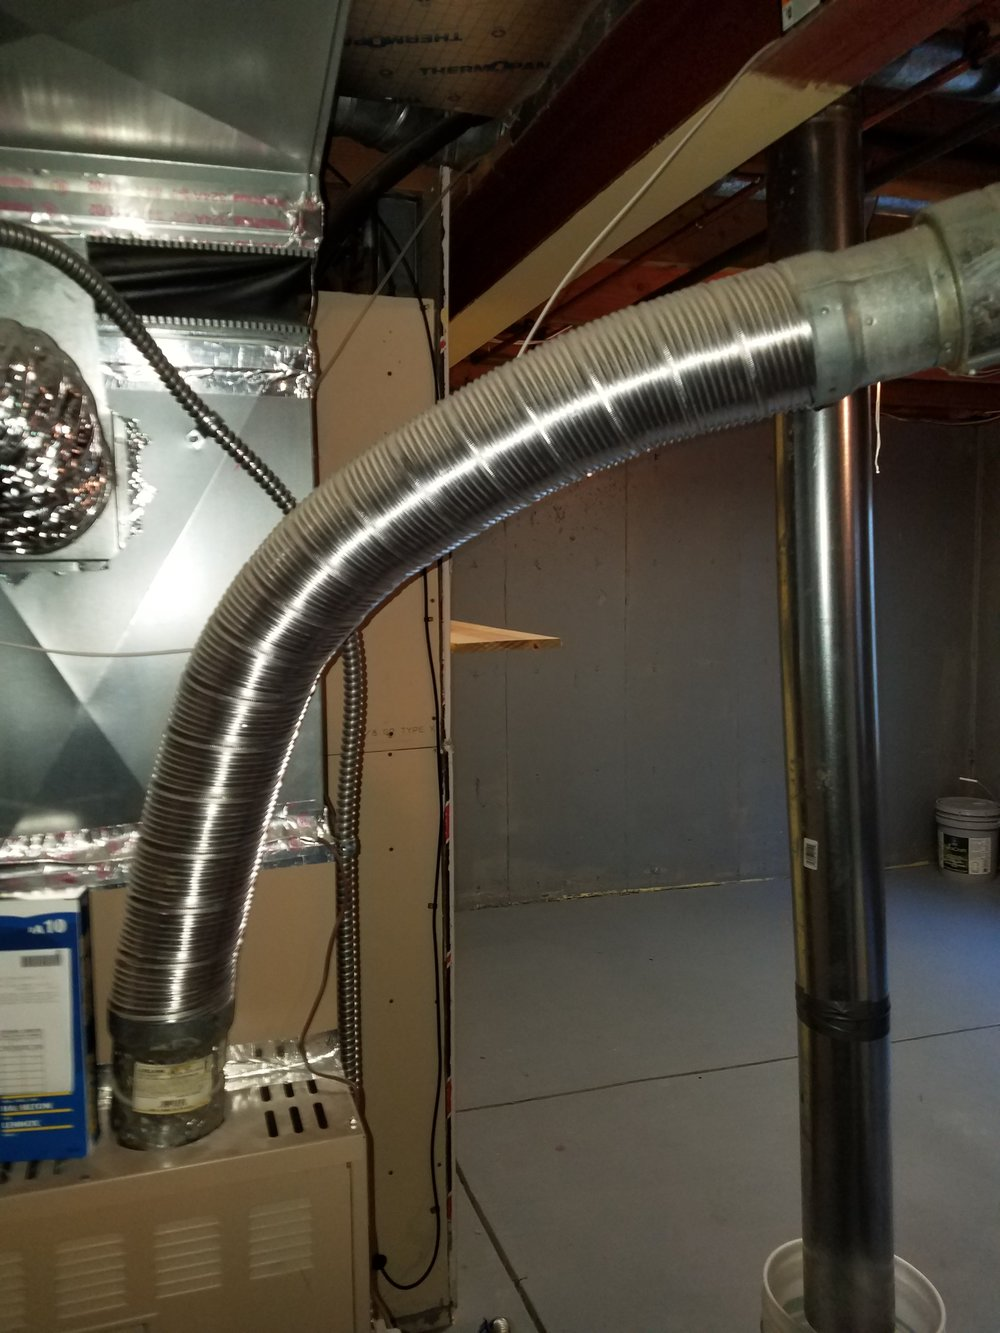 Although this flue may look questionable, there are several flexible flue connections that are safe to use at water heaters, furnaces and boilers.